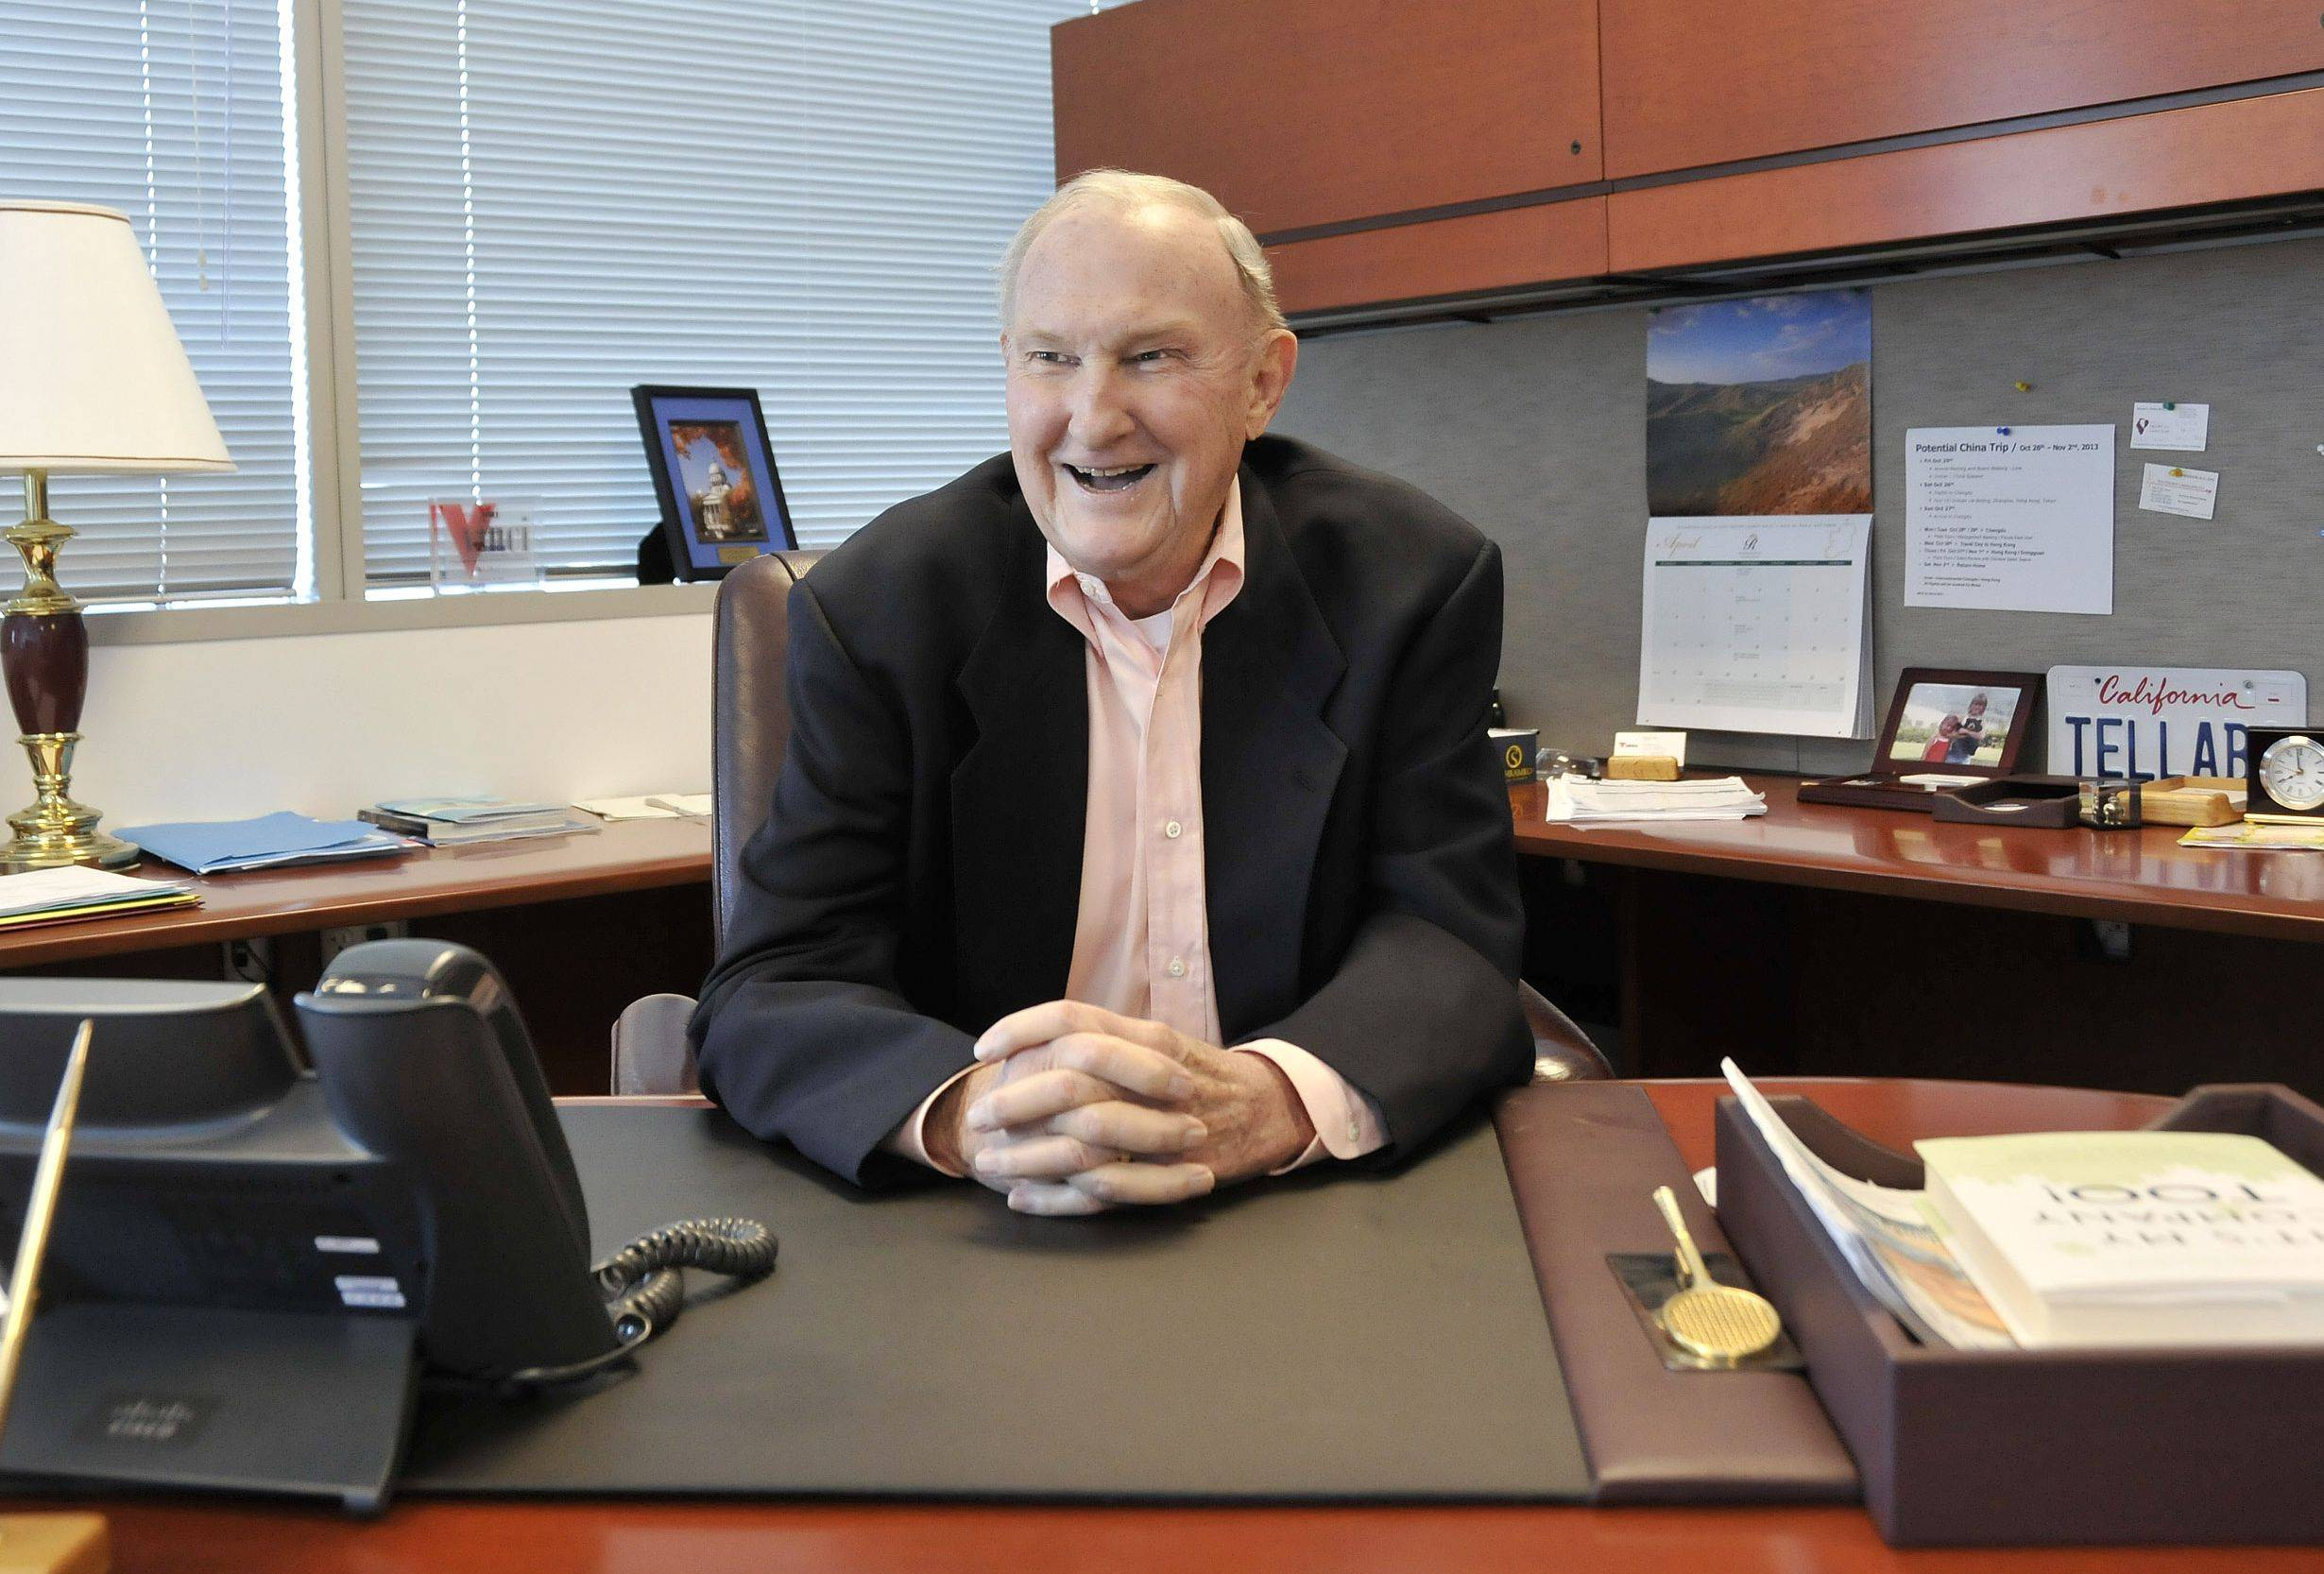 Tellabs Inc. co-founder and Chairman Mike J. Birck talks Monday in his office at the Naperville headquarters, two days before he officially retires during the company's shareholder meeting.